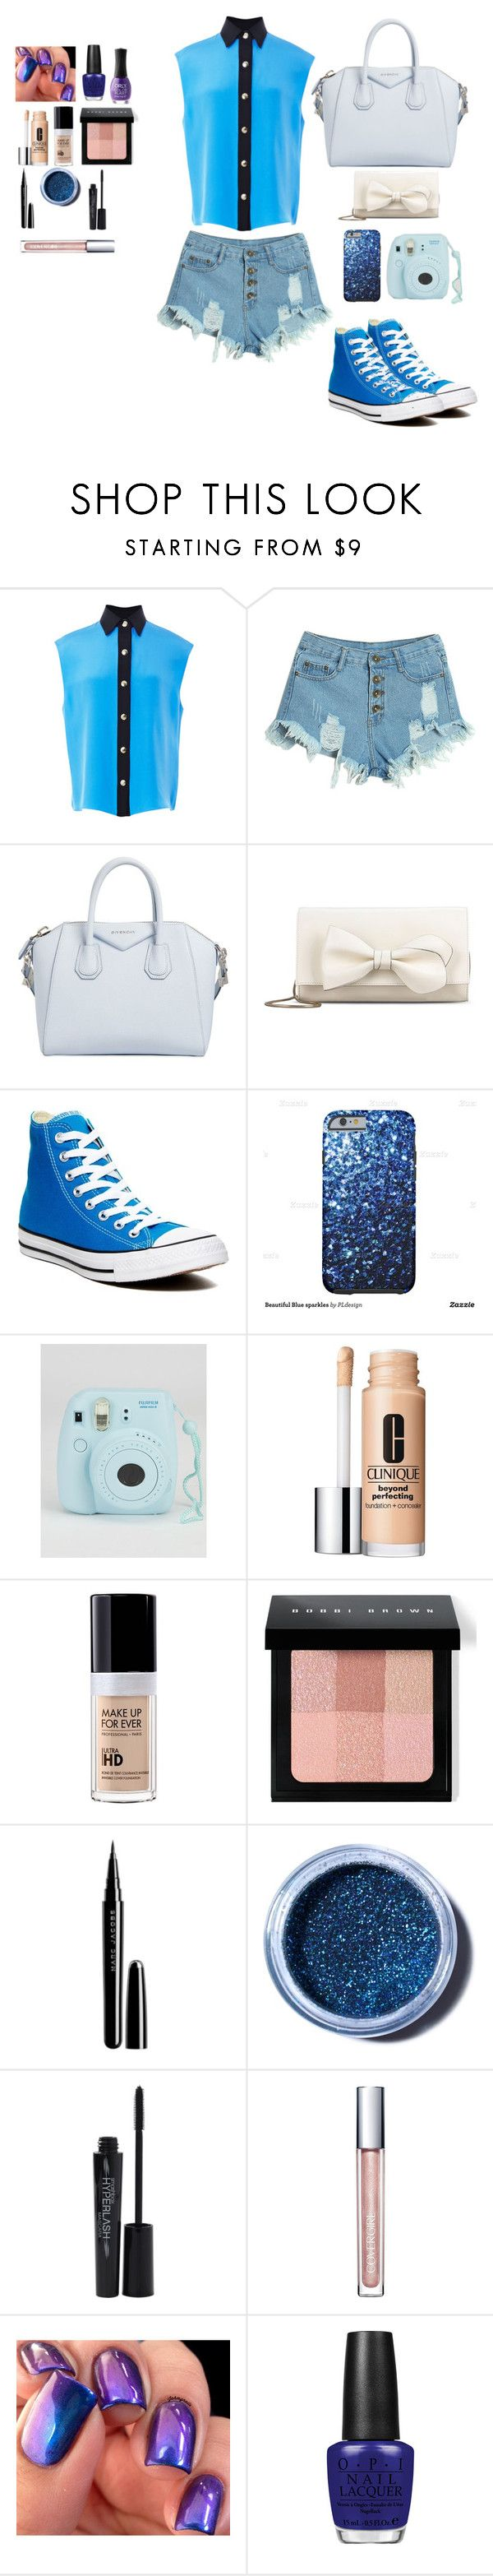 """""""Everyday 17"""" by lonewolfx ❤ liked on Polyvore featuring FAUSTO PUGLISI, WithChic, Givenchy, RED Valentino, Converse, Clinique, MAKE UP FOR EVER, Bobbi Brown Cosmetics, Marc Jacobs and Lime Crime"""